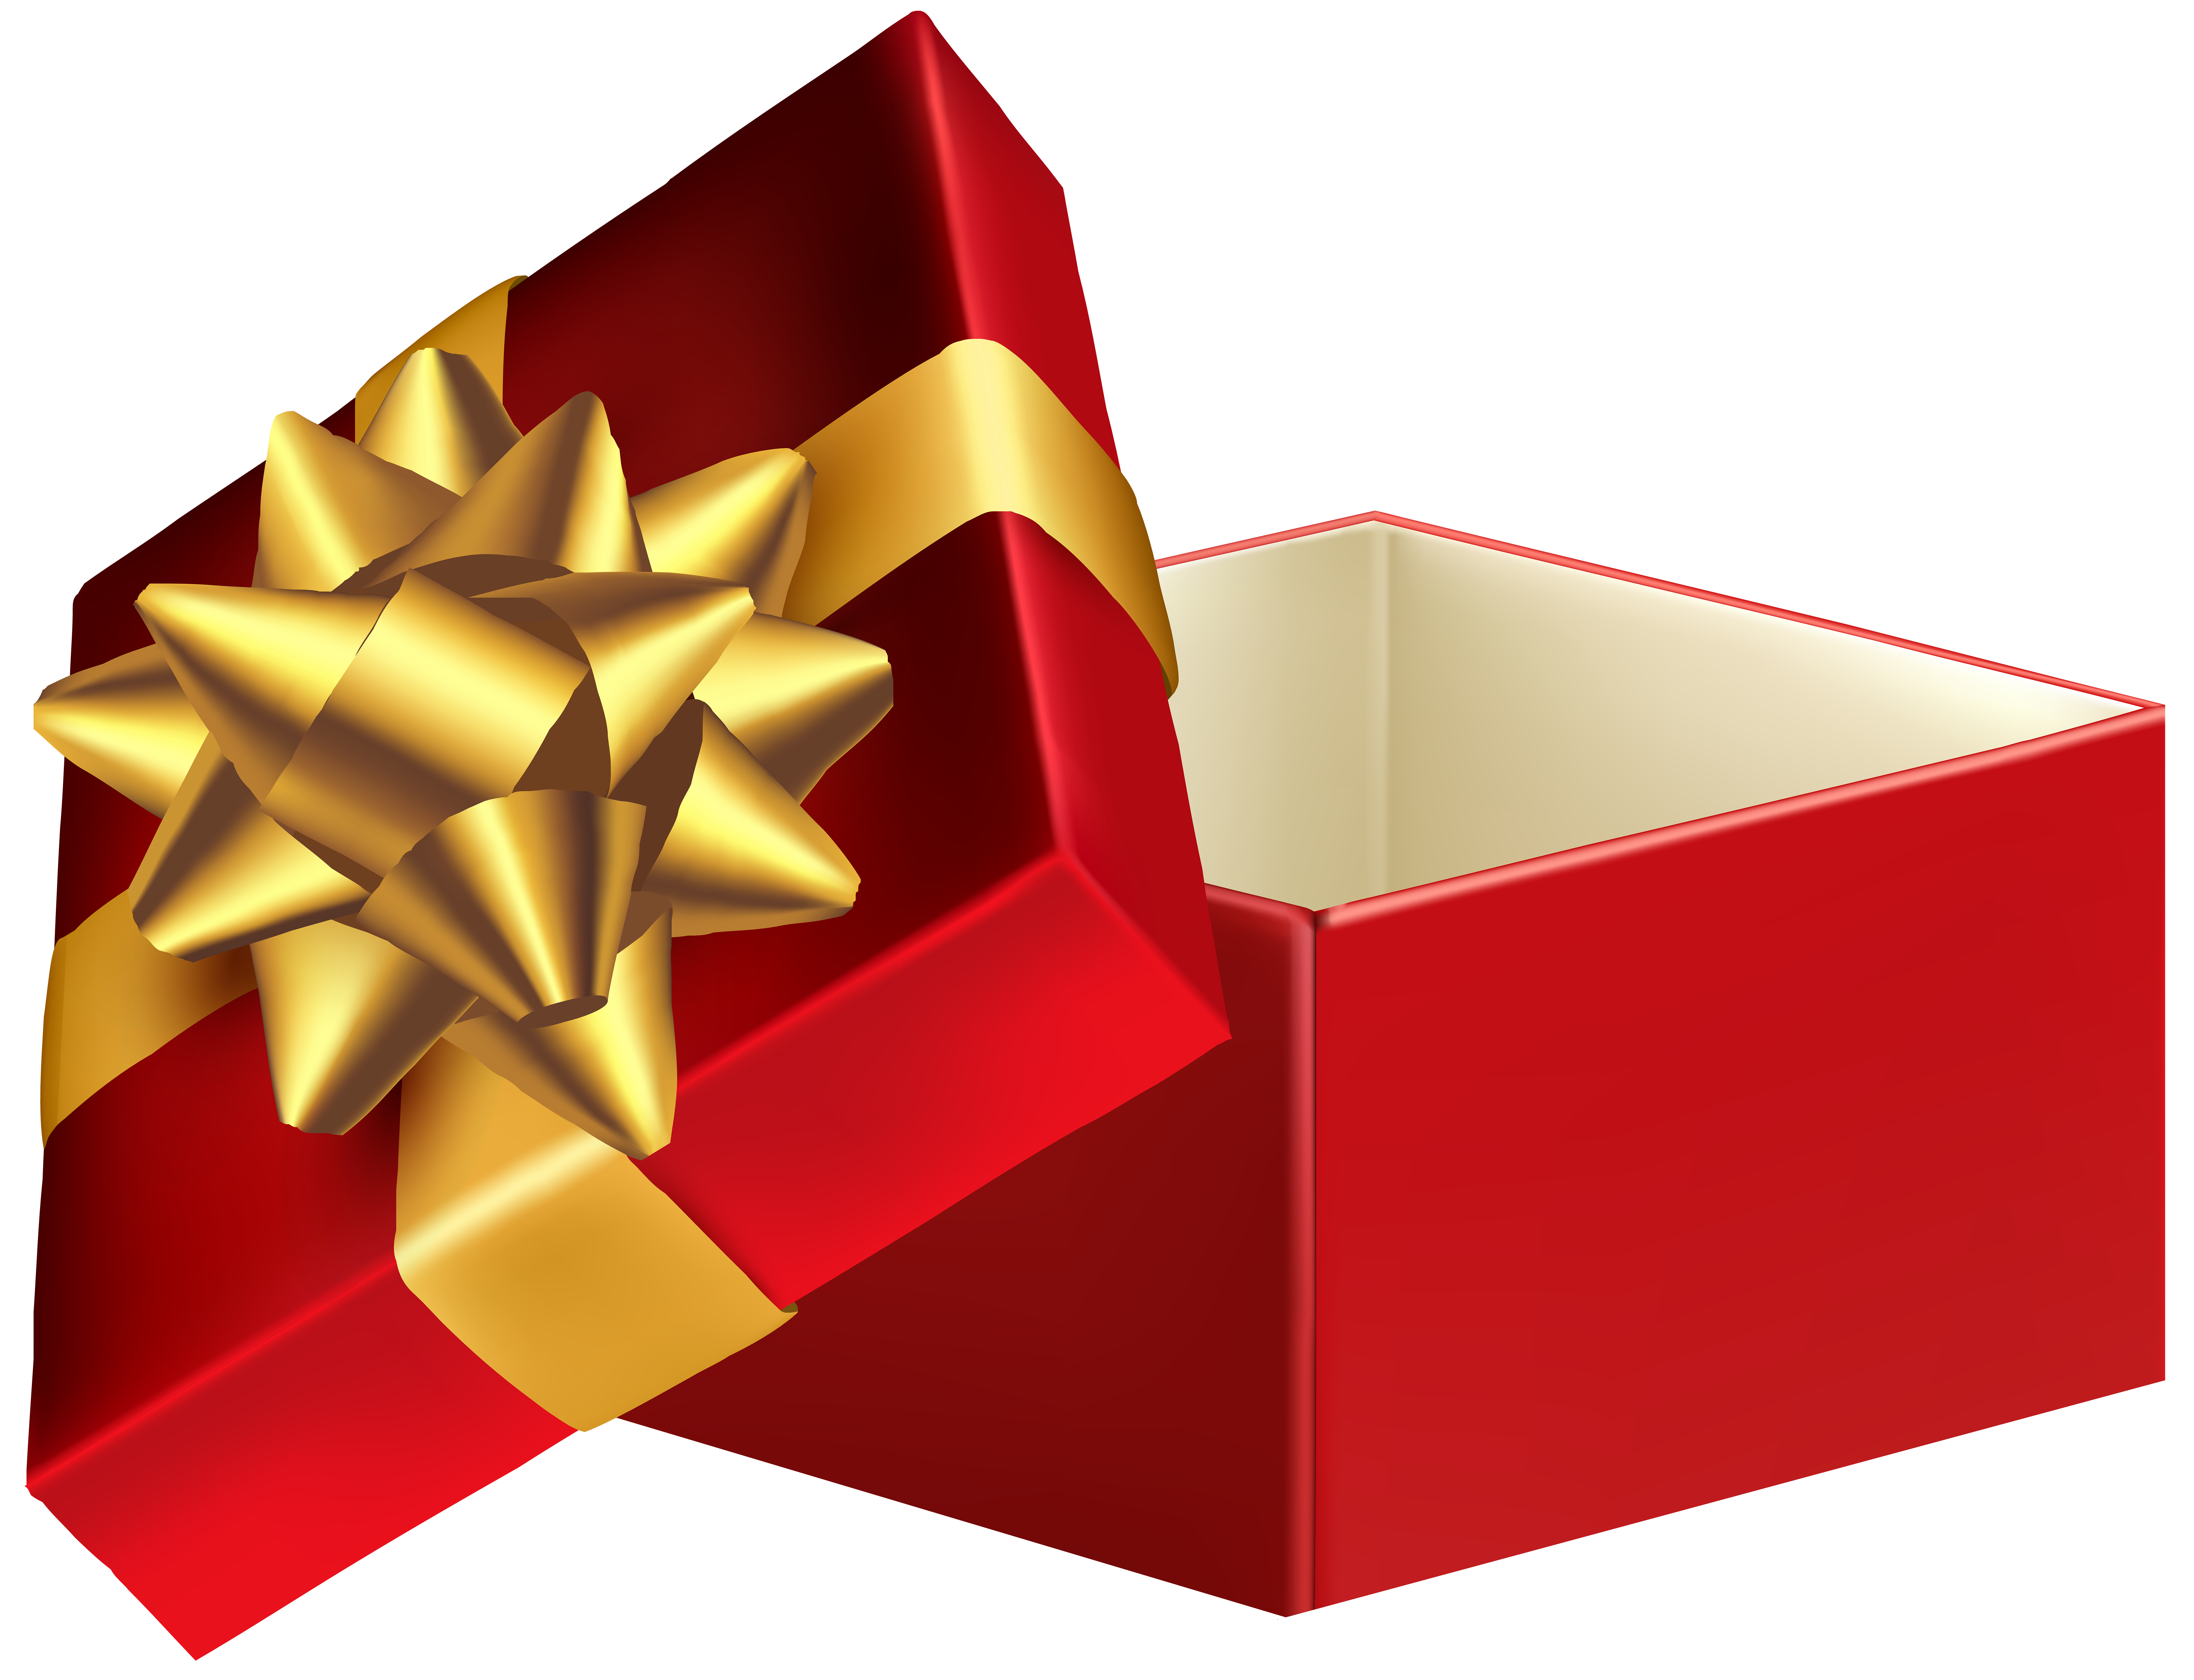 Christmas gift box clipart svg royalty free Gift Box Christmas Day Clip art - Red Open Gift Box PNG Clip Art ... svg royalty free